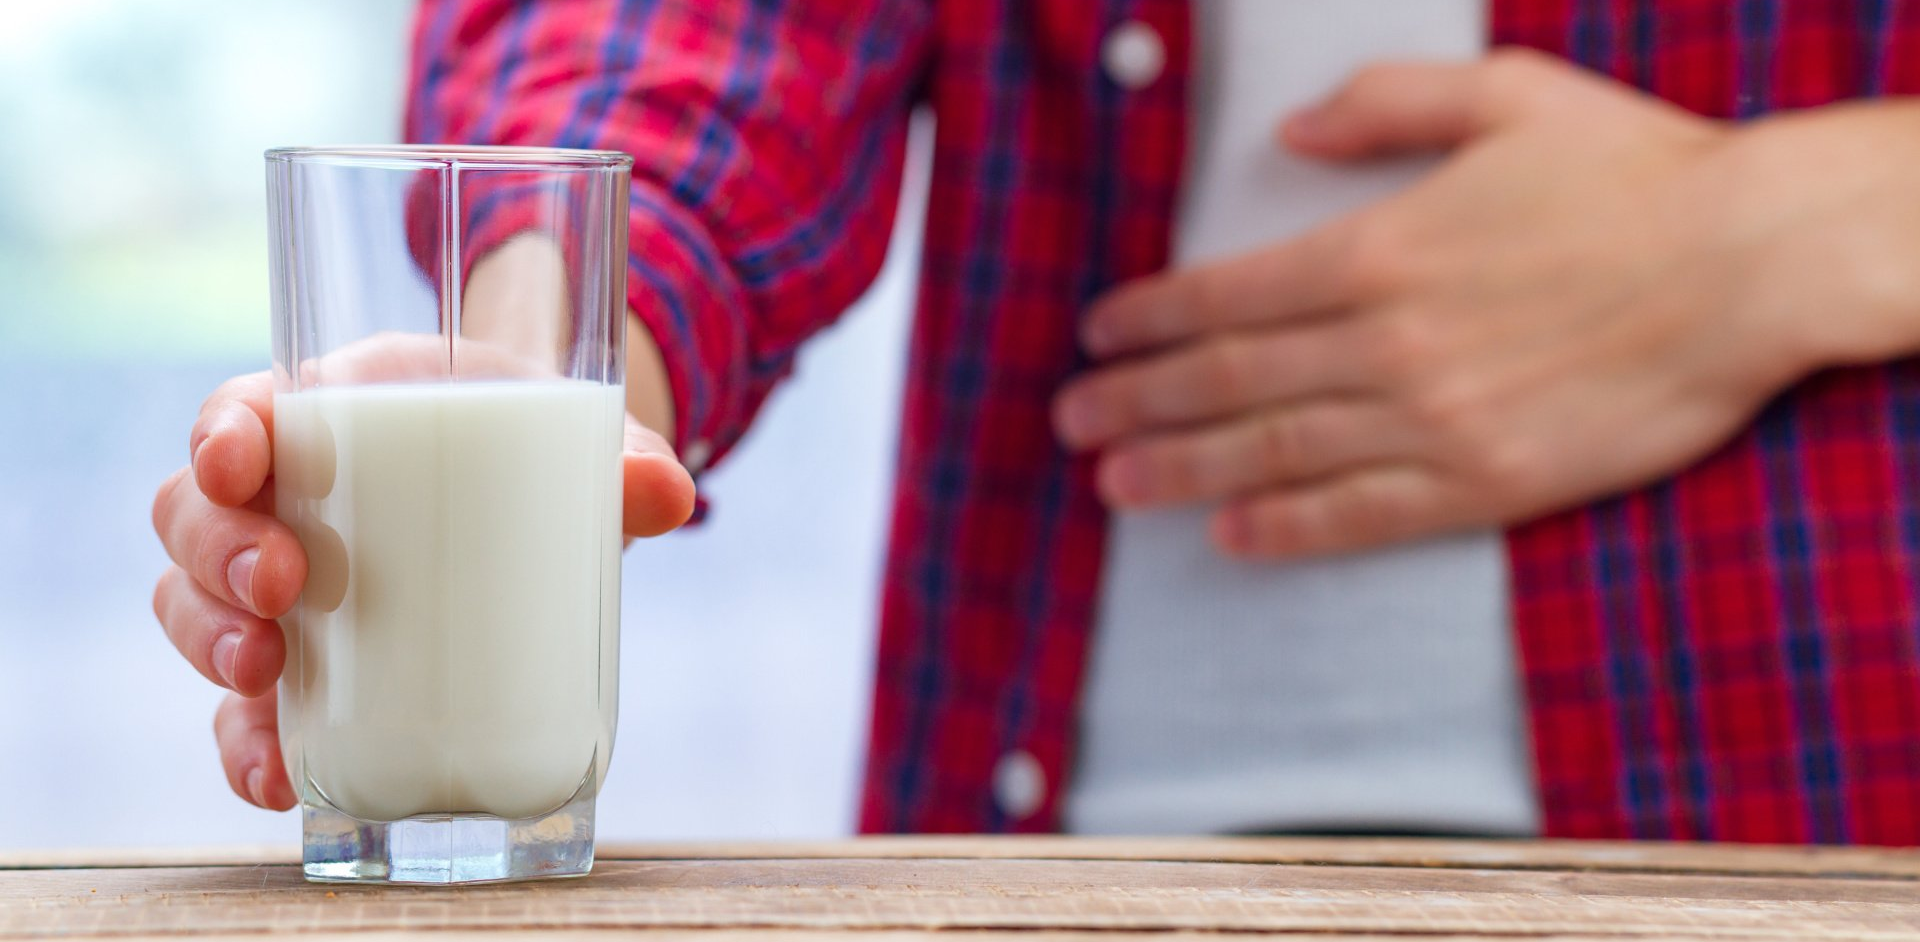 Lactose Intolerance: The Signs and Treatments